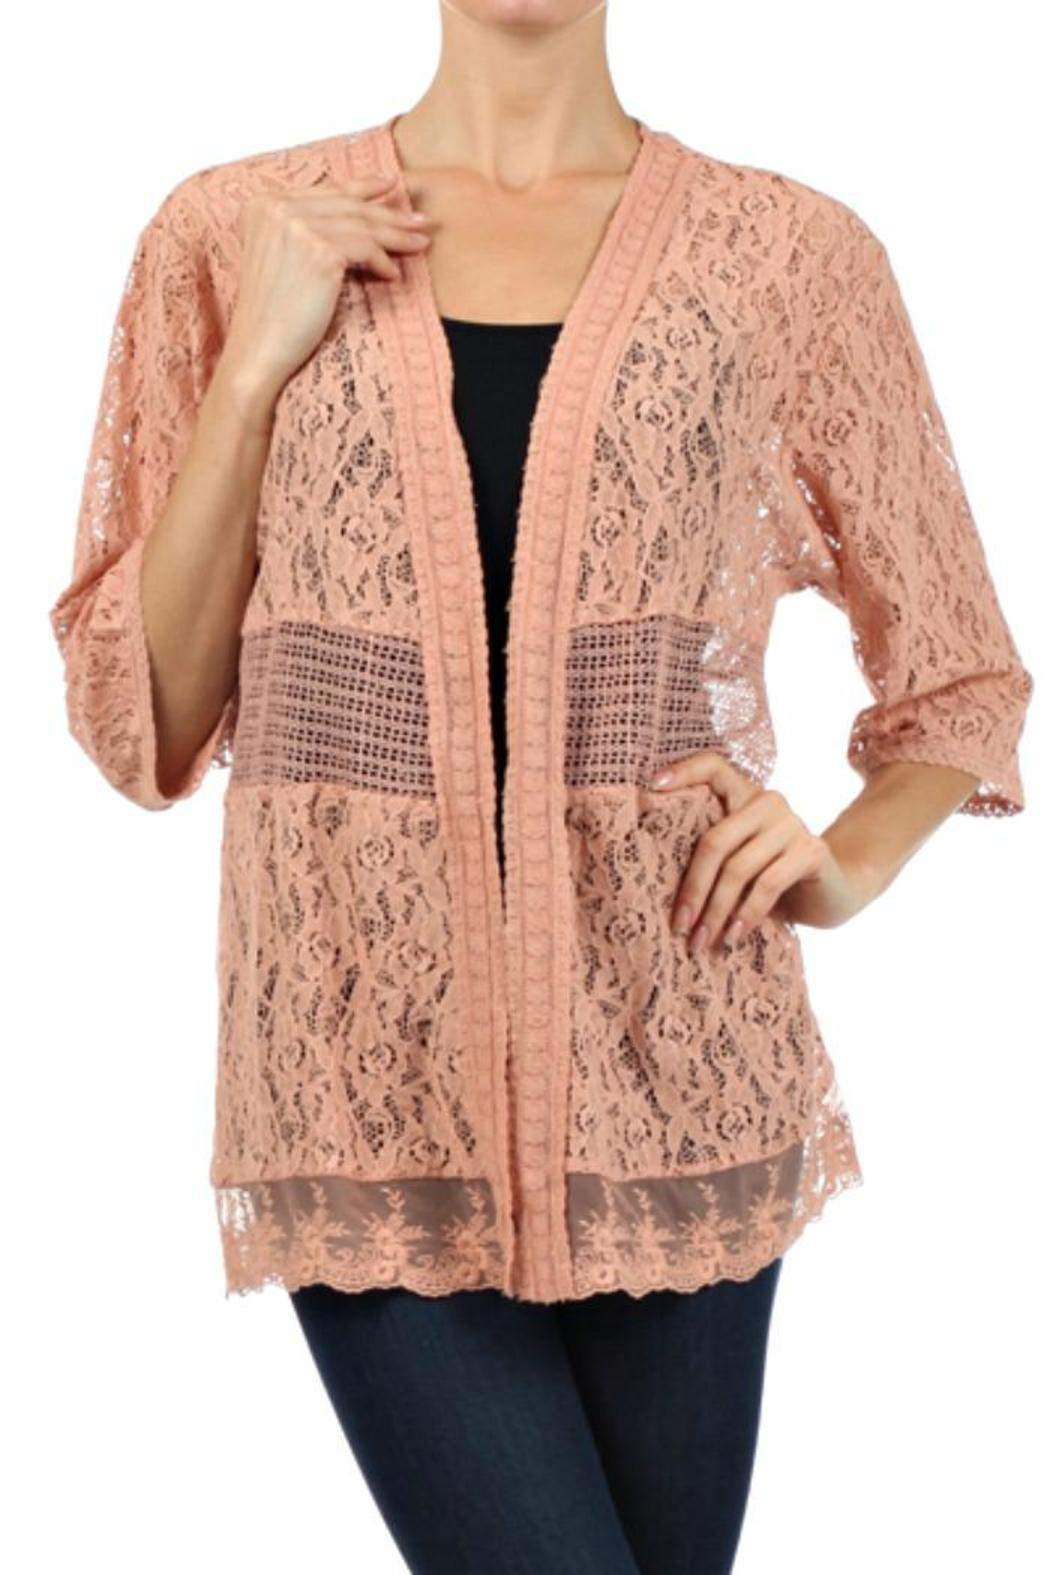 Flying Tomato Peach Lace Cardigan from Tennessee by Southern Muse ...